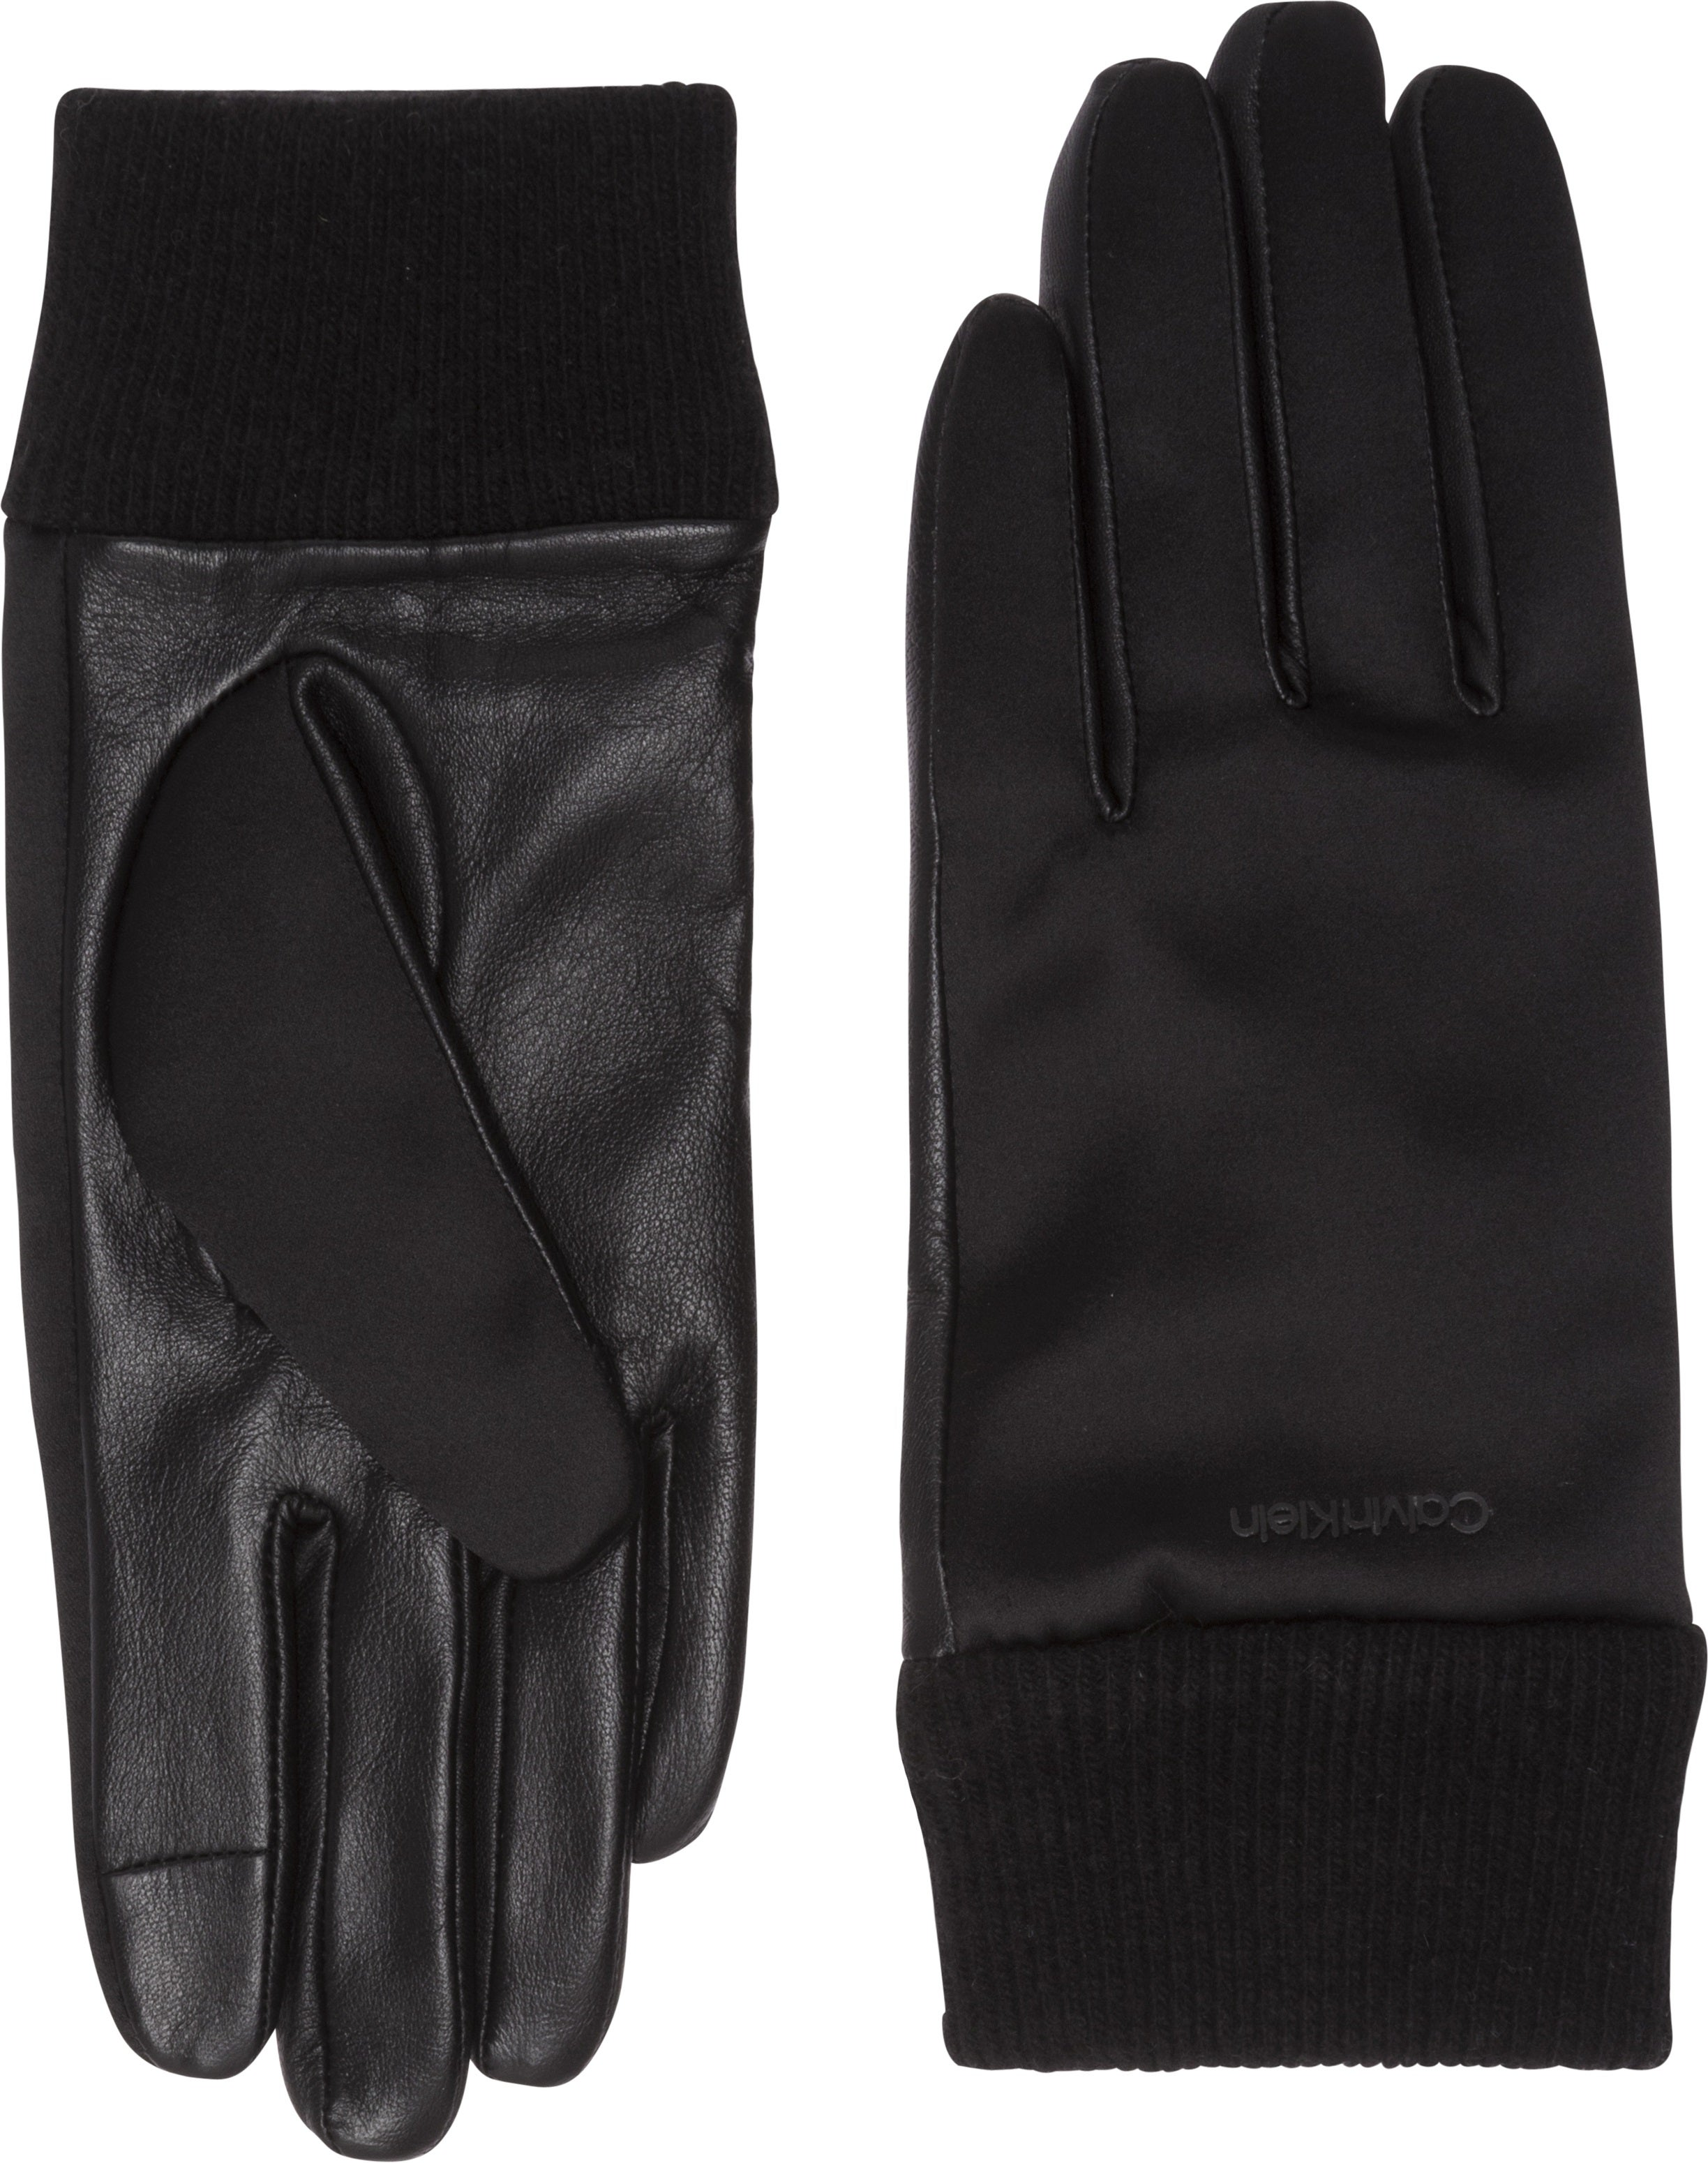 Calvin Klein Satin & Leather Women's Gloves